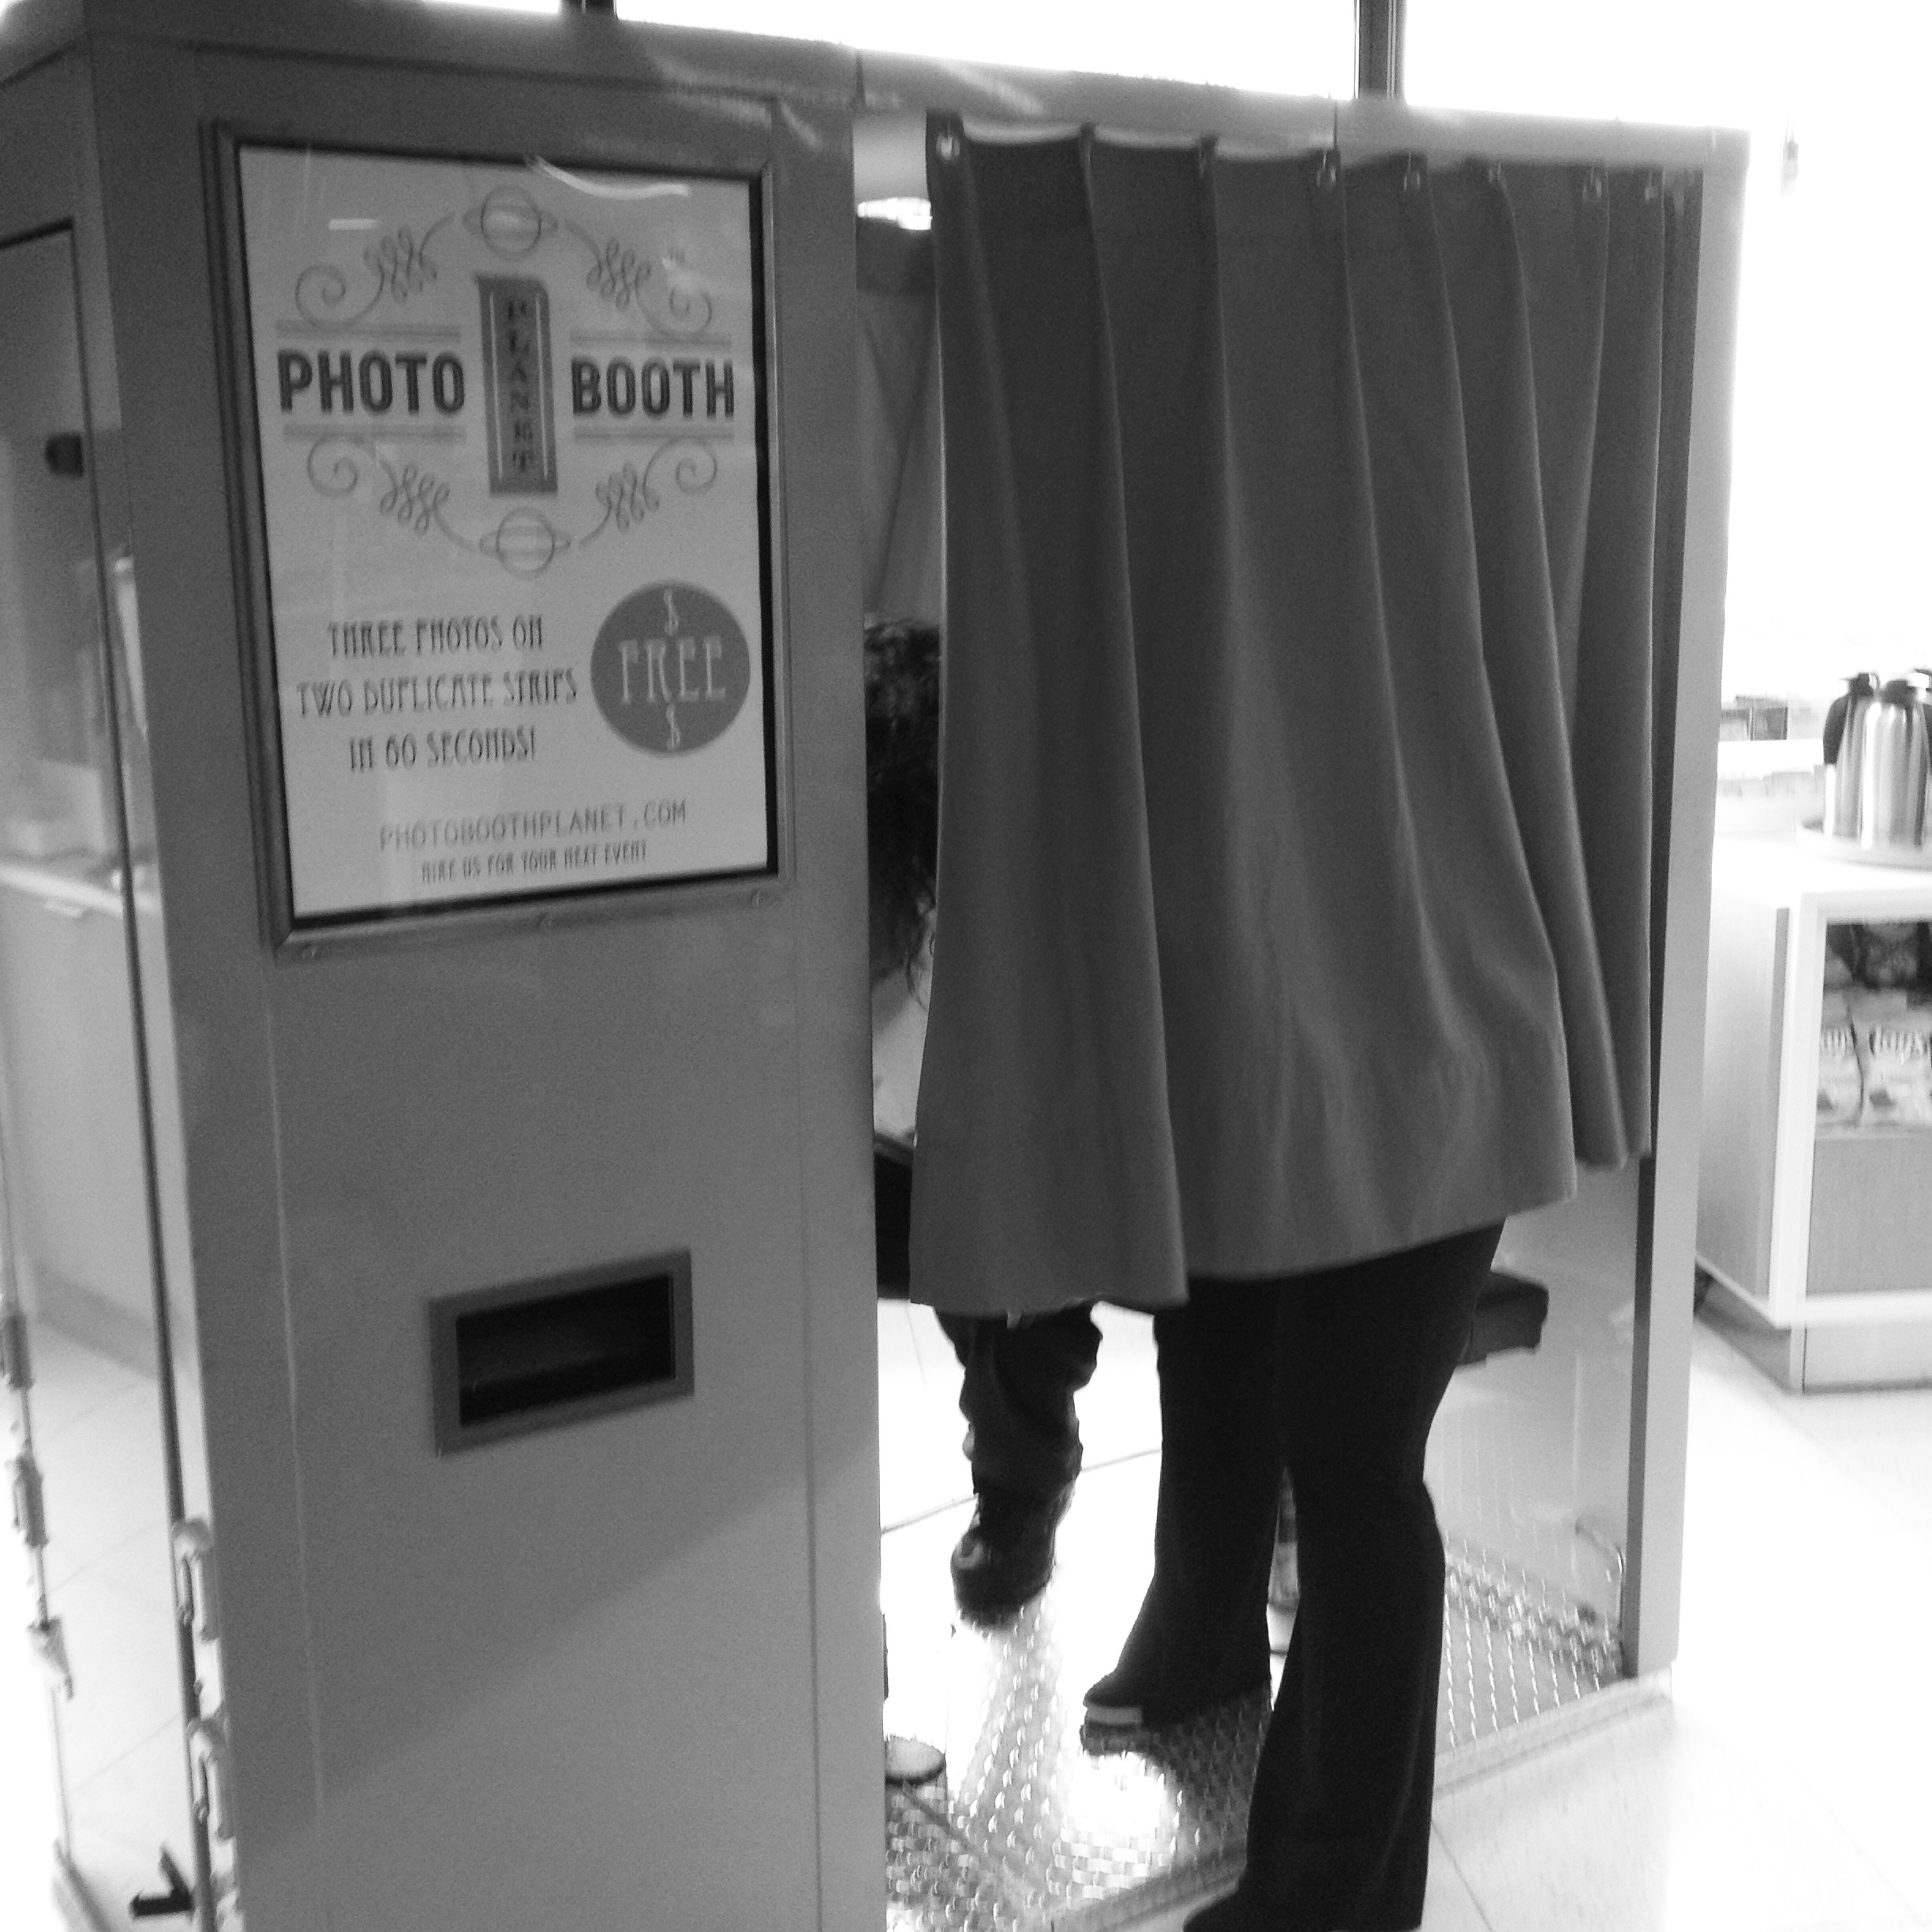 Photo Booth Rental NYC - Space and Aesthetics - Photobooth